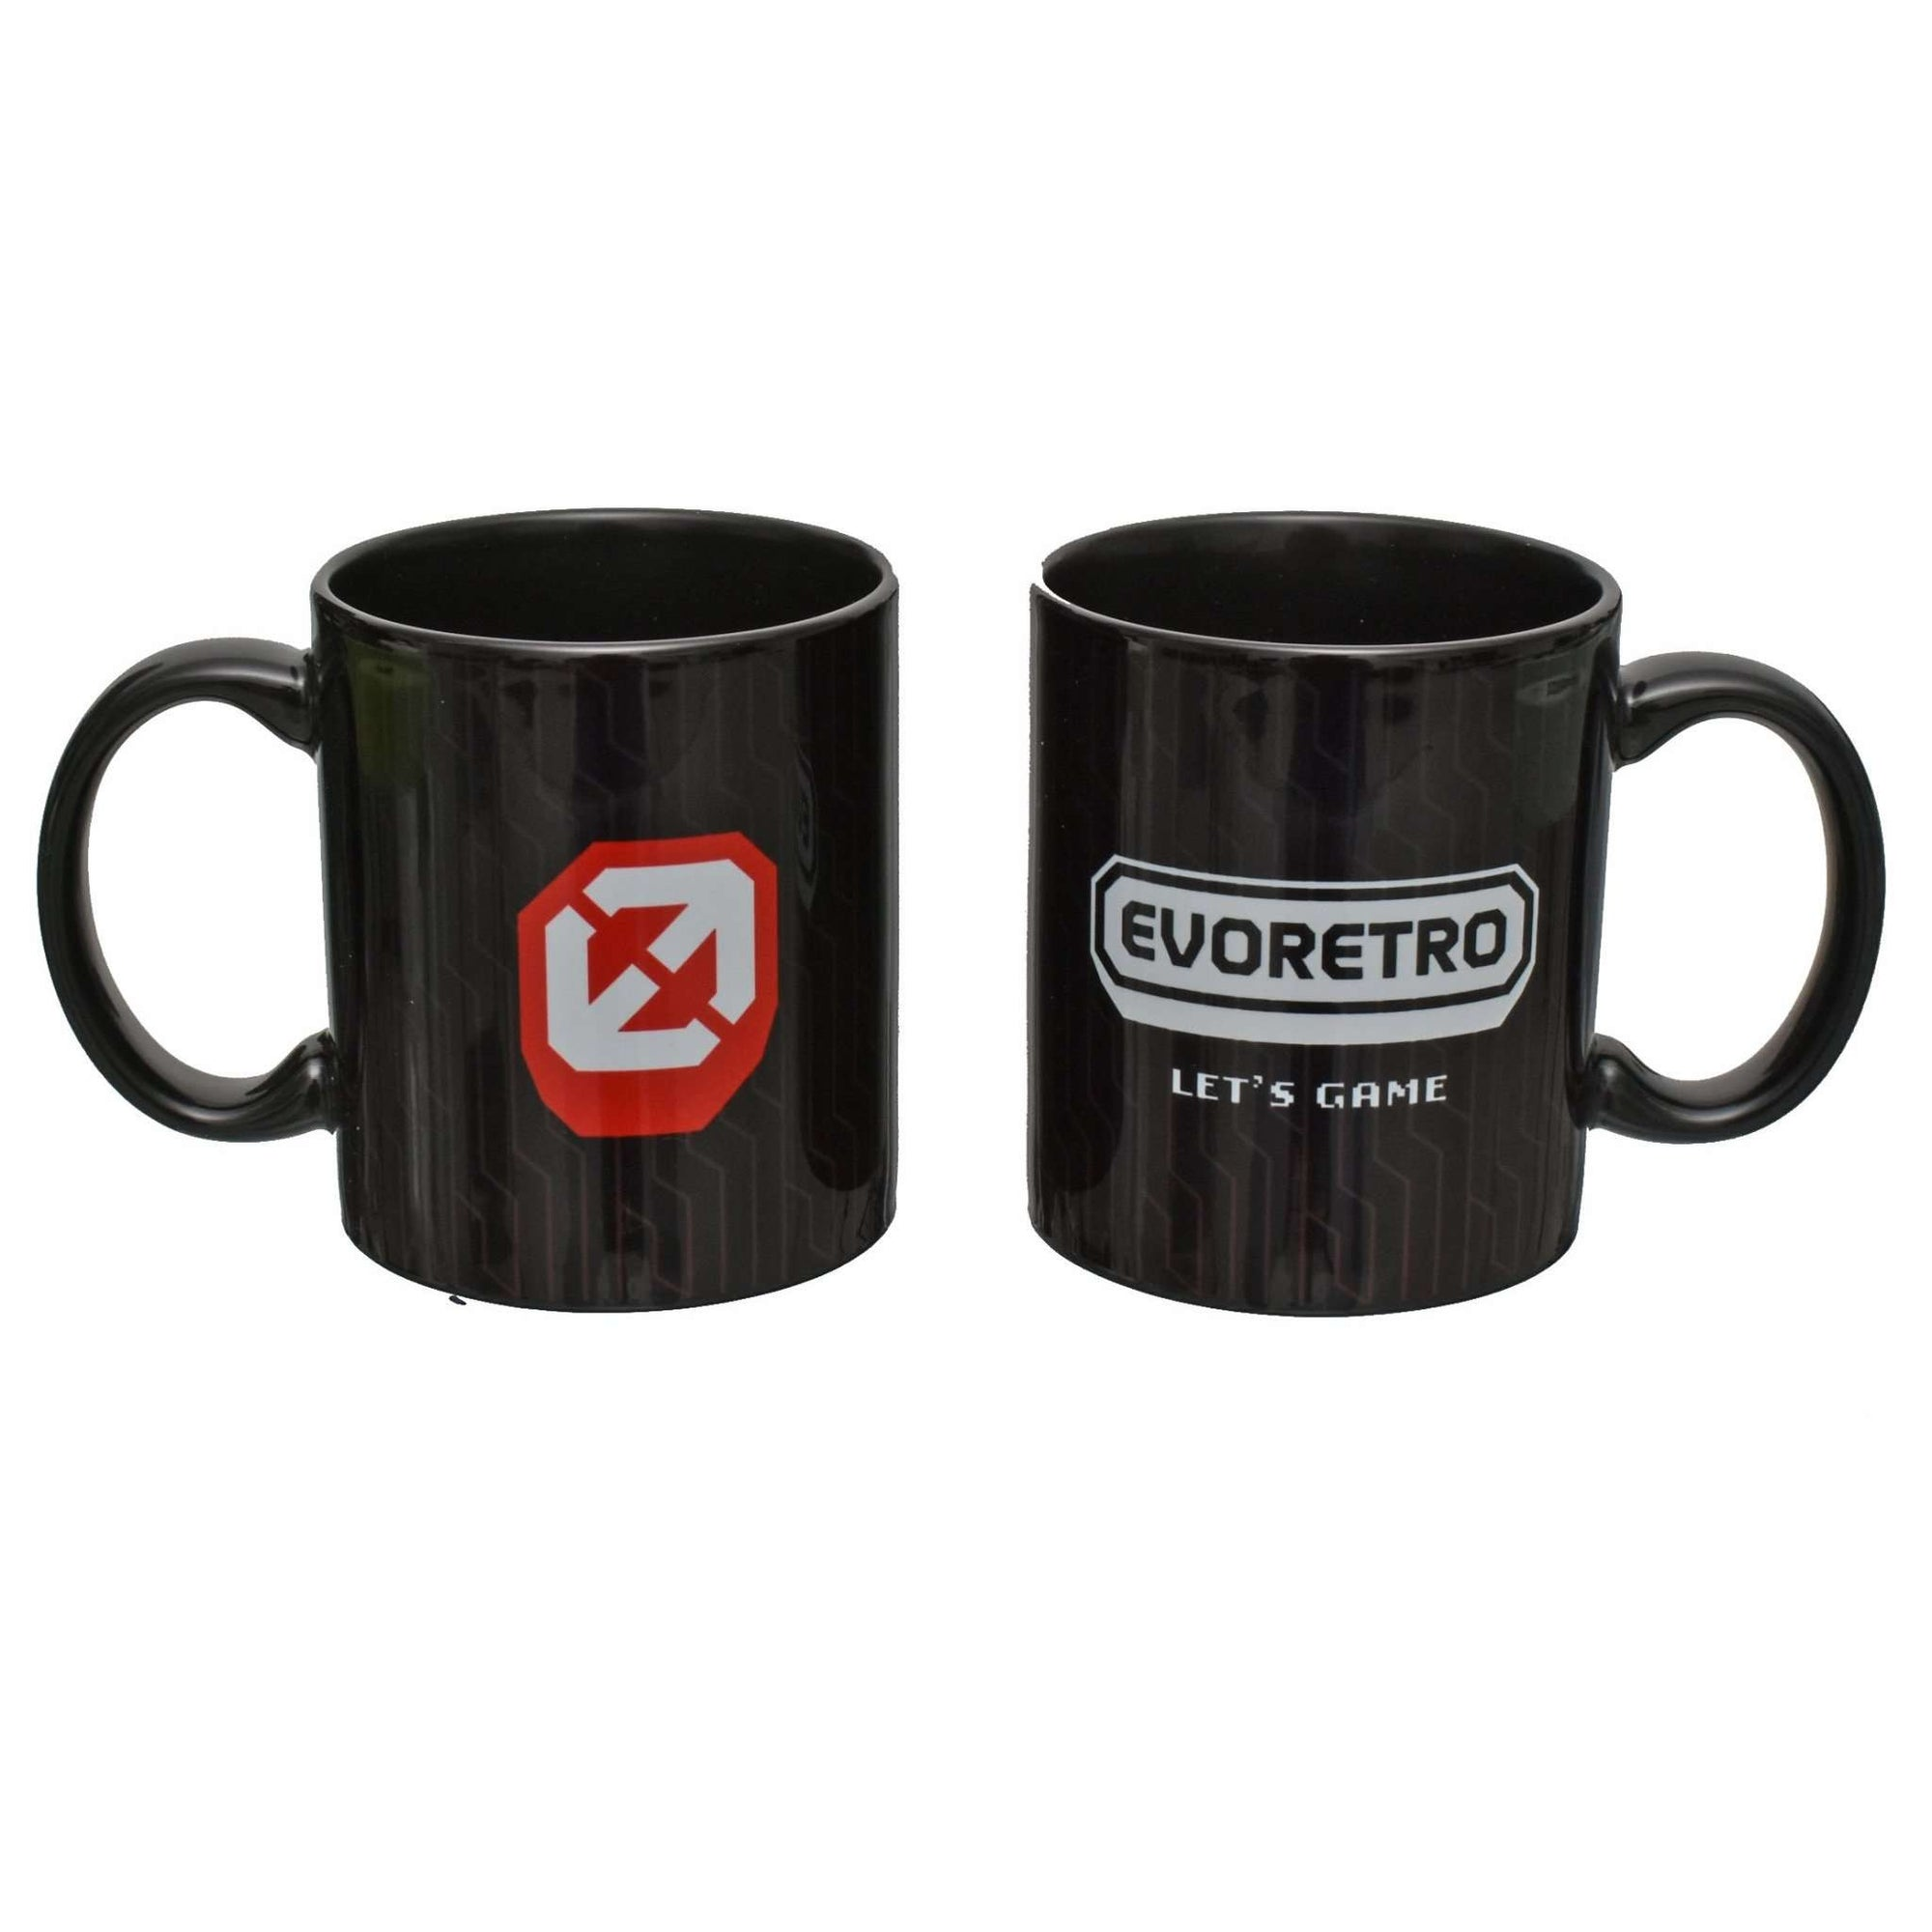 EVORETRO Ceramic Black Mug - EvoRetro Lets Game